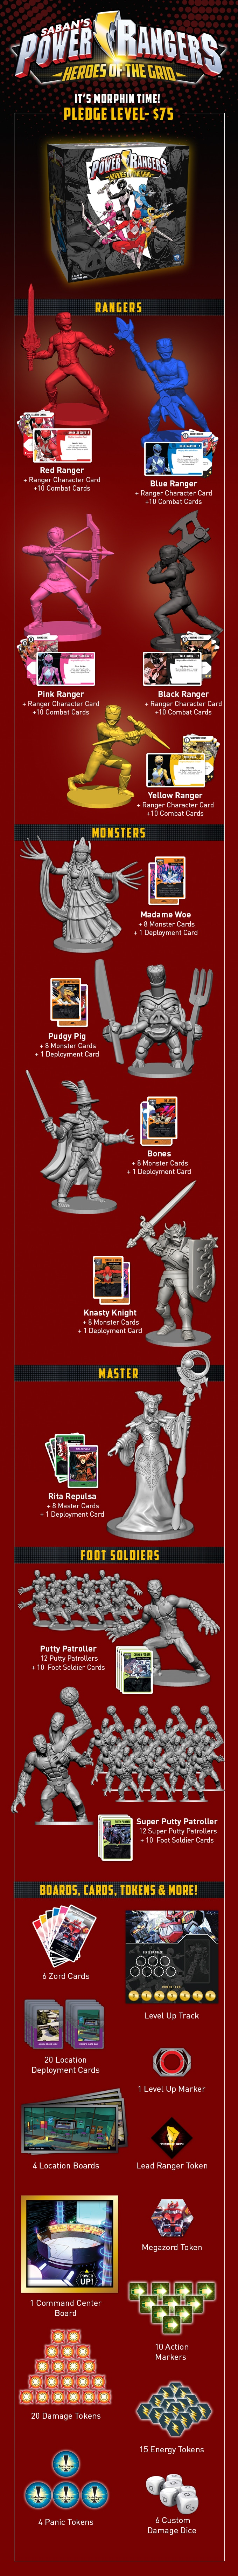 Power Rangers_Heroes of the Grid_kickstarter goals_base set (2)